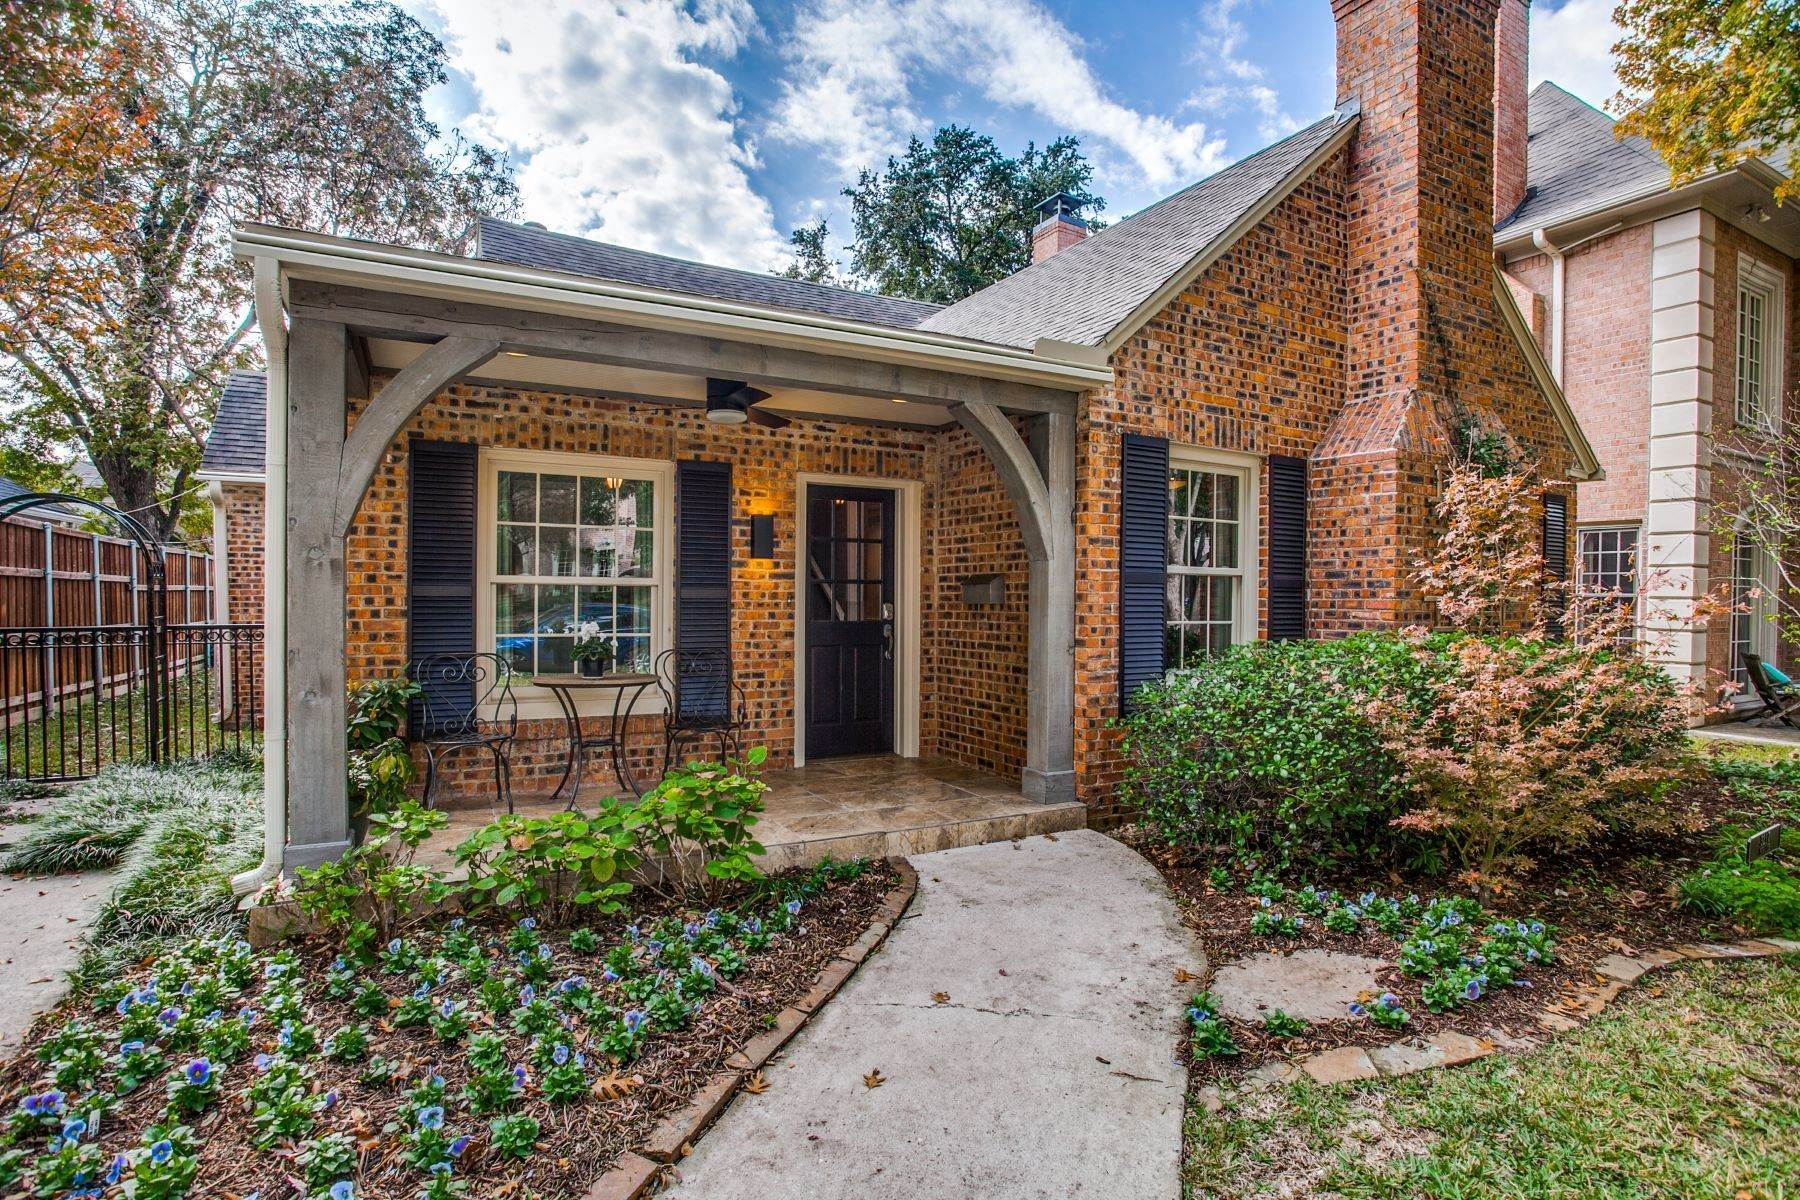 Single Family Homes for Sale at University Park Charmer 3217 Purdue Avenue University Park, Texas 75225 United States